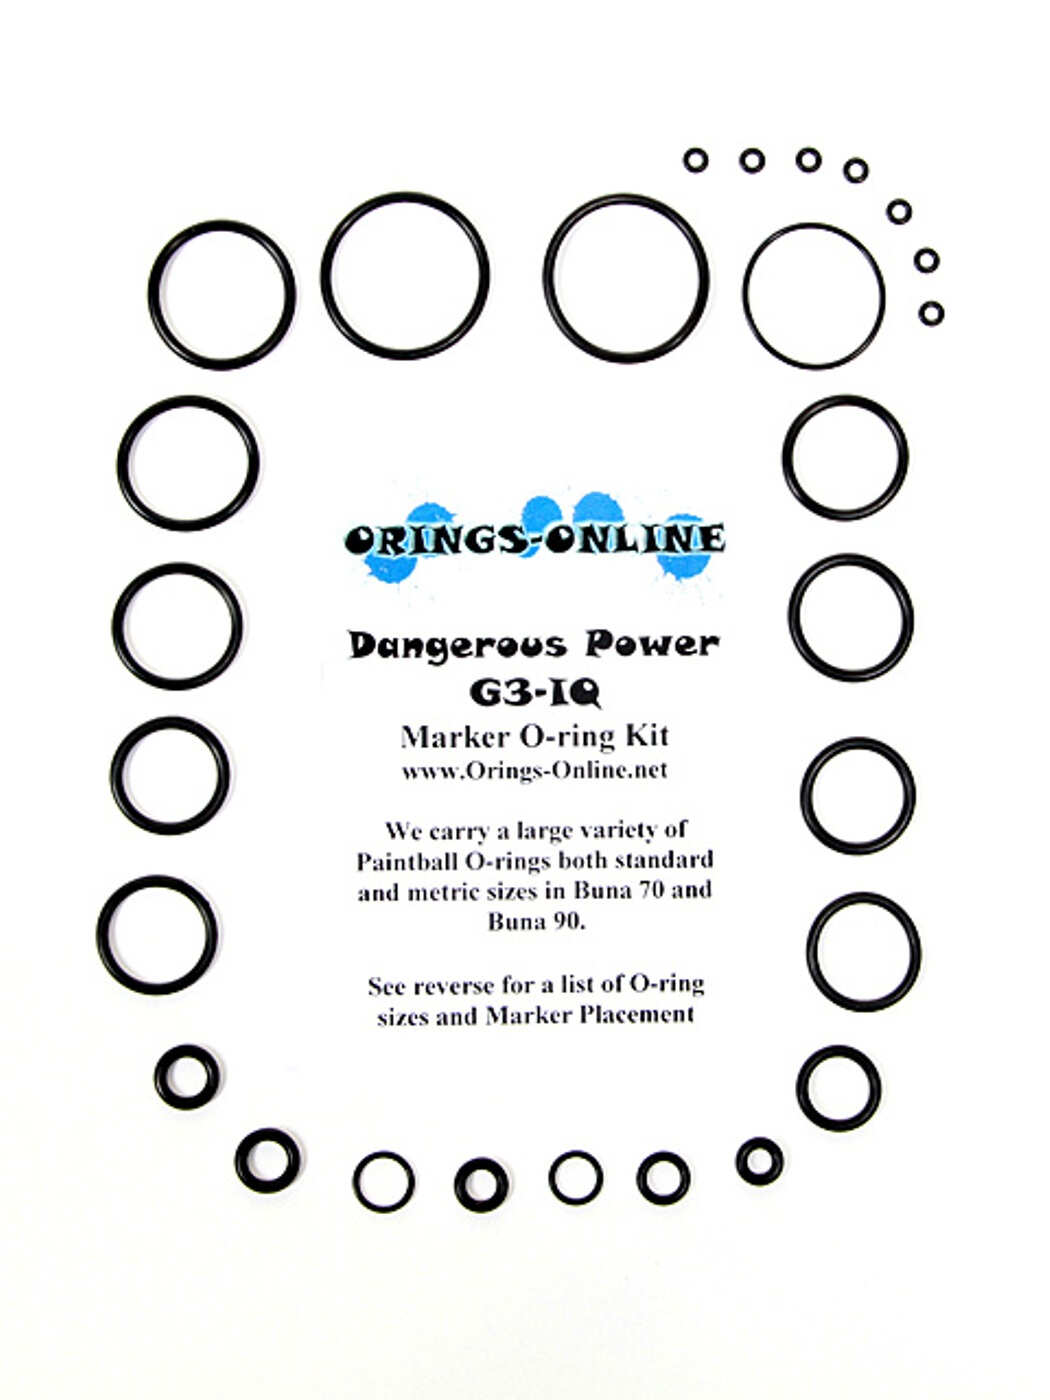 Dangerous Power G3-IQ Marker O-ring Kit